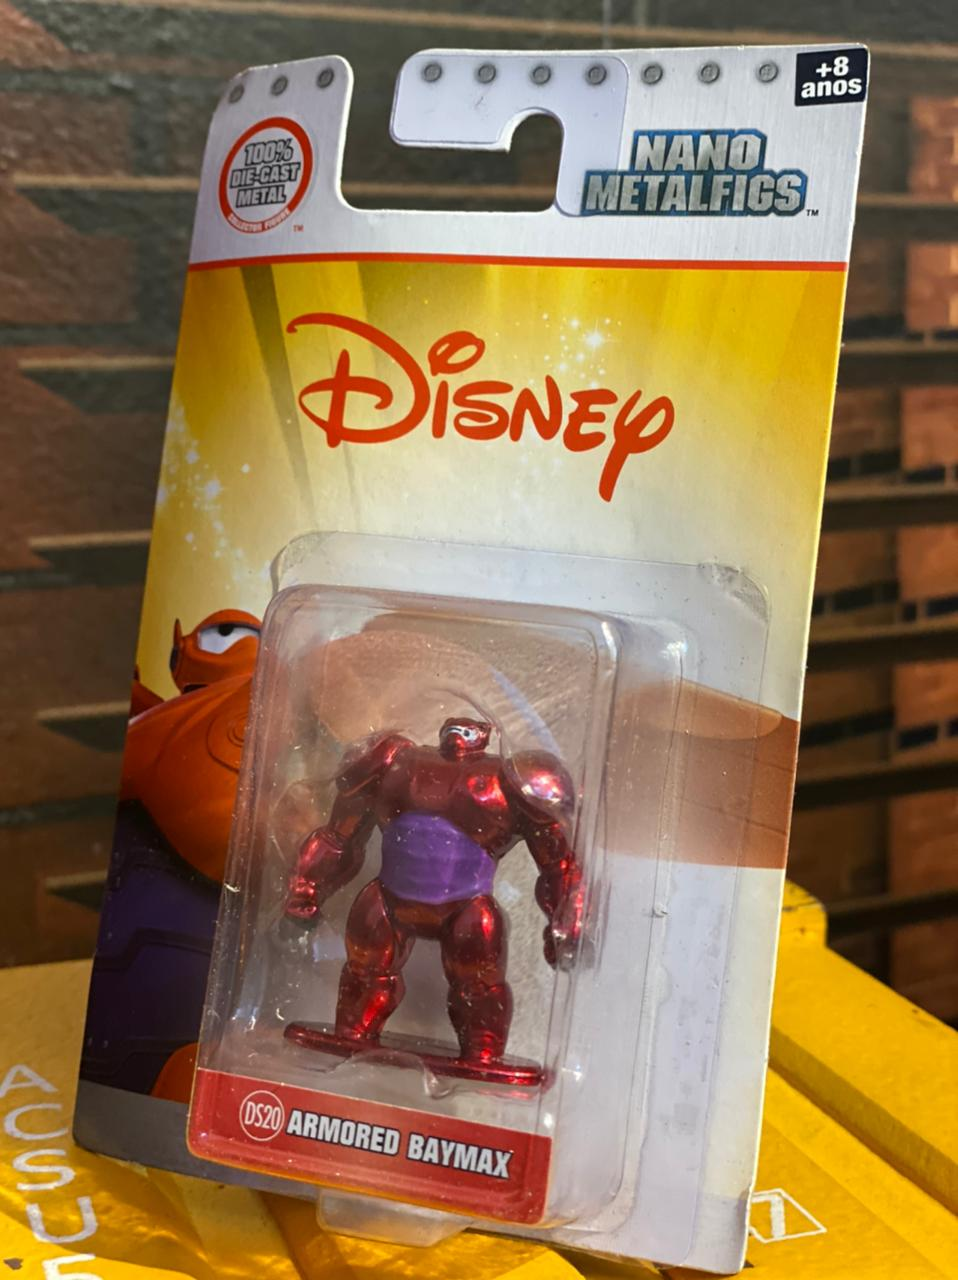 Nano Metalfigs Armored Baymax: Disney (DS20) - Jada Toys